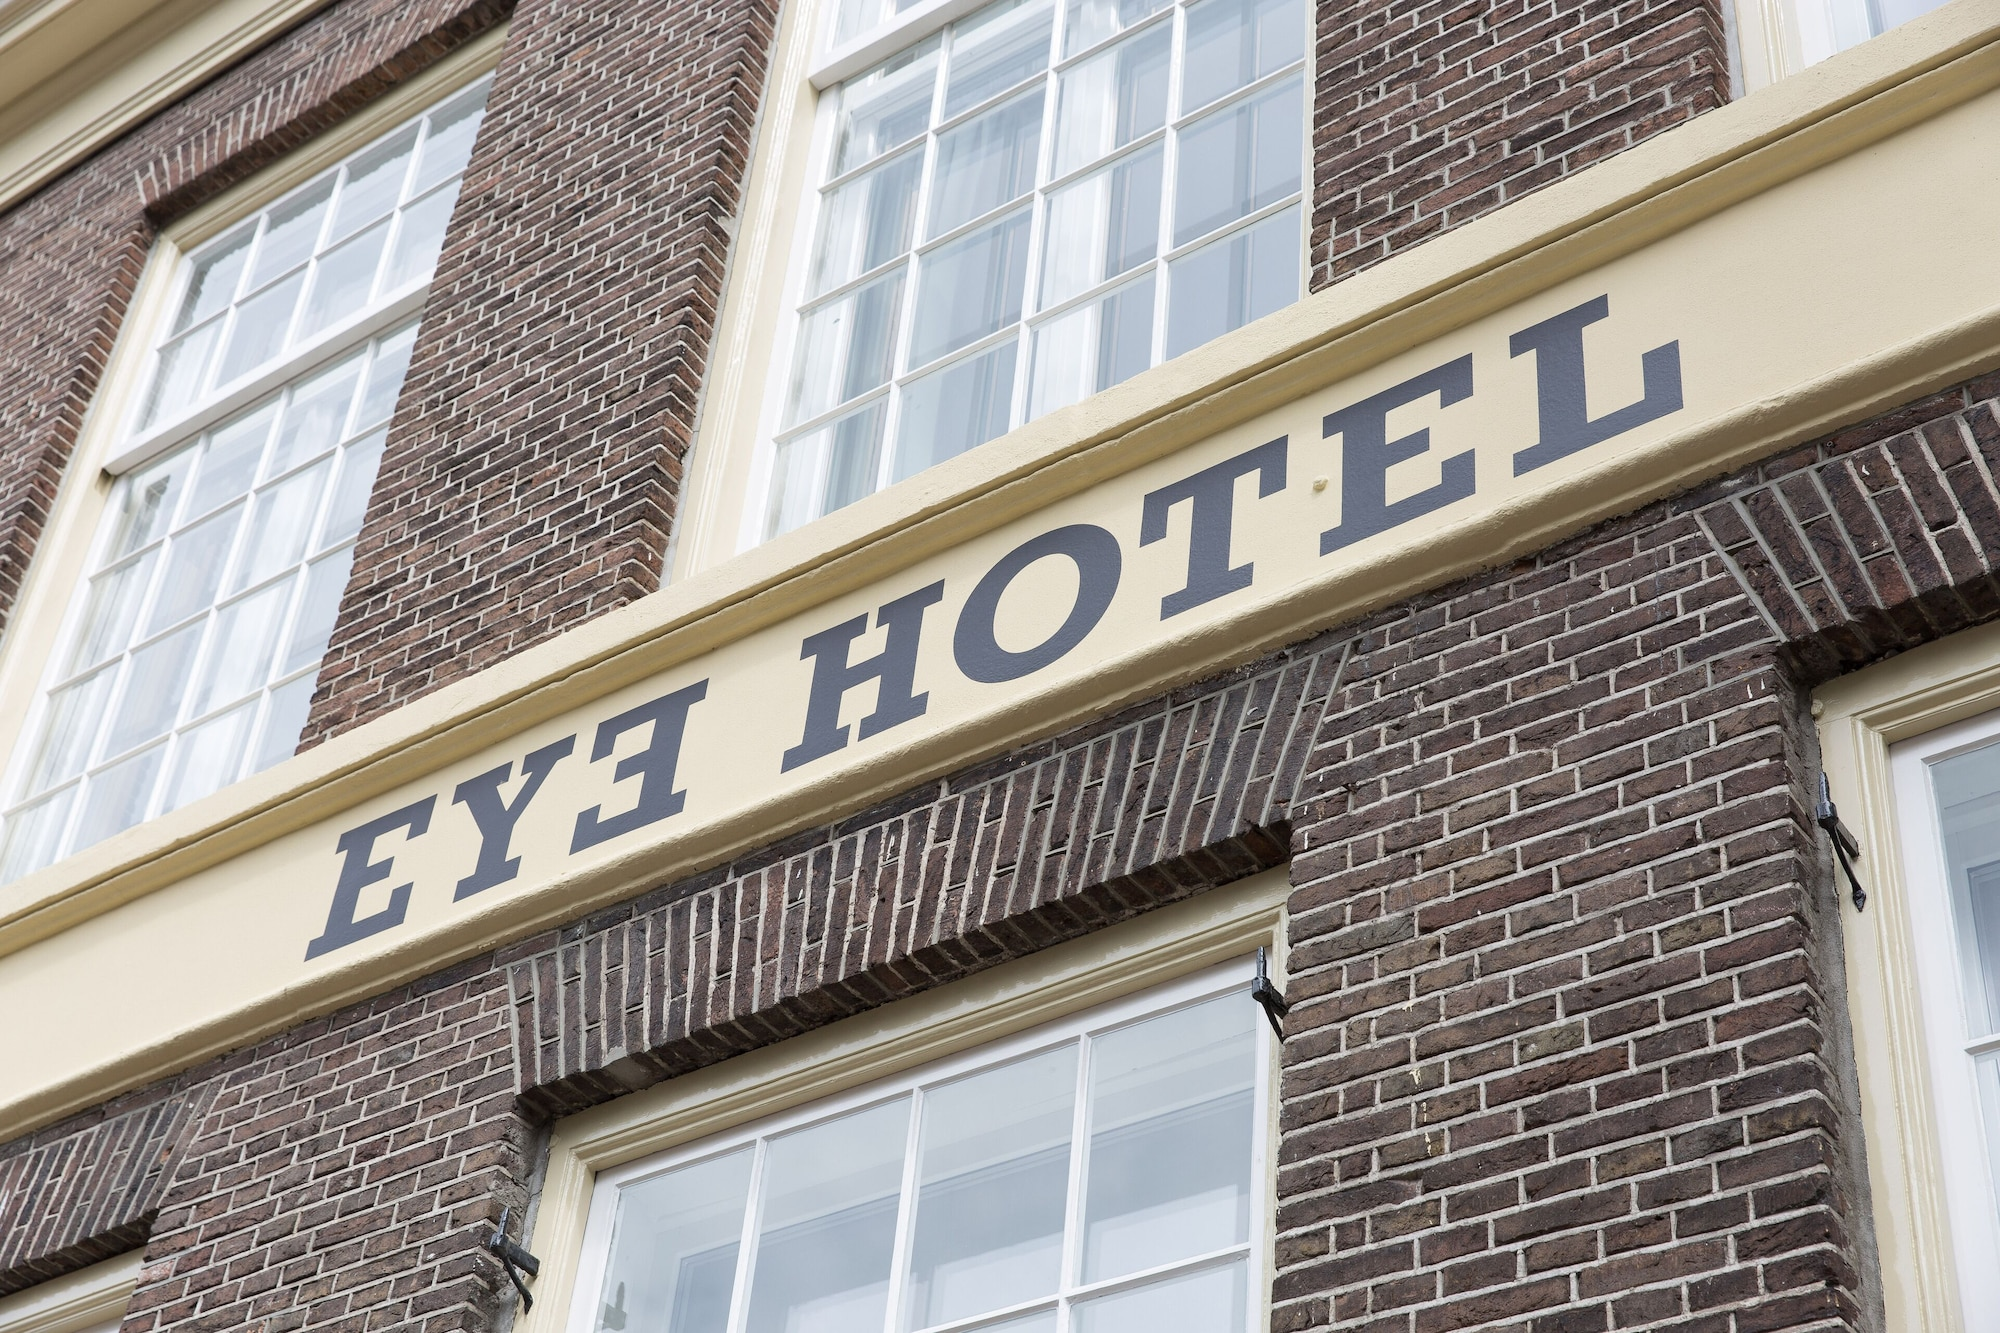 Eye Hotel, Utrecht